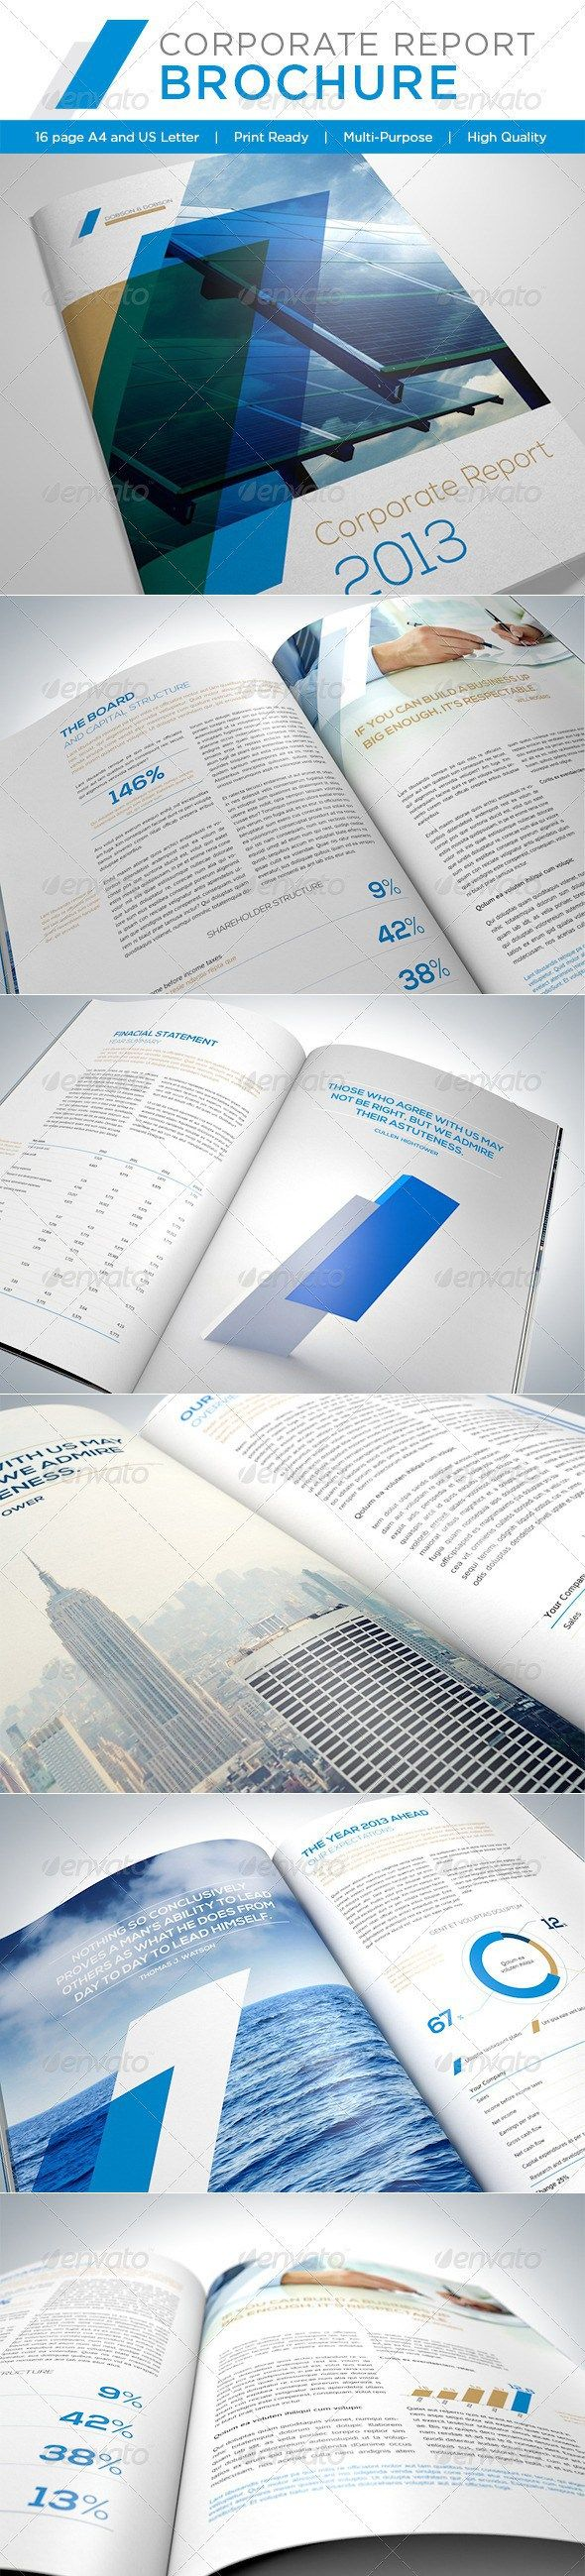 31 best annual reports images on Pinterest | Annual reports ...